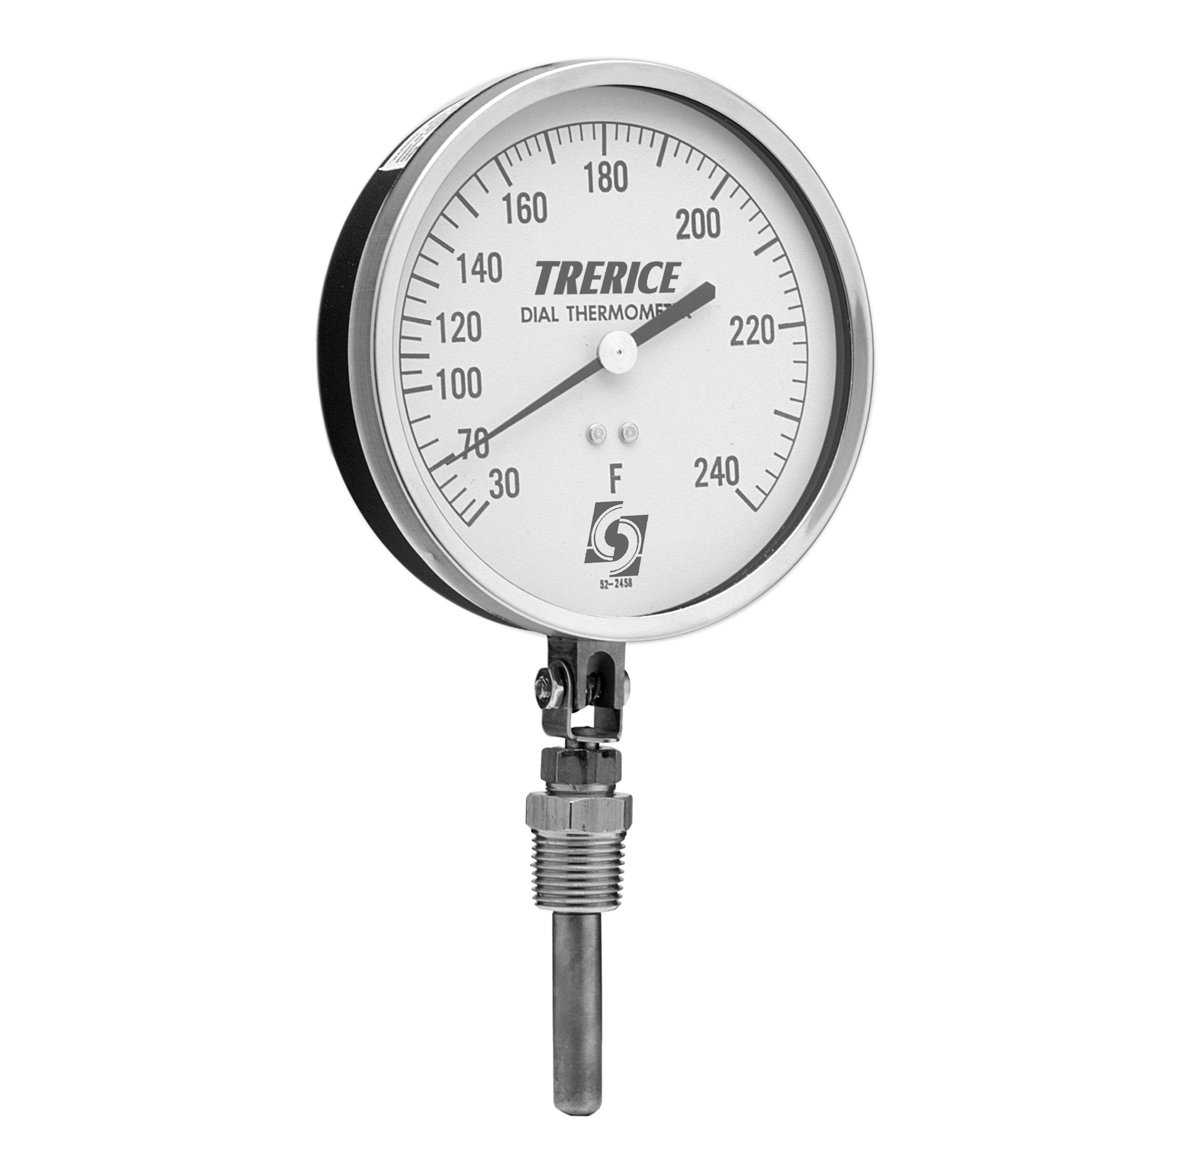 Trerice V80445050B31 Direct Mounted Dial Thermometer, Vapor Actuated, 4.5'' aluminum adjustable angle case, 0-100˚F, 2'' copper bulb